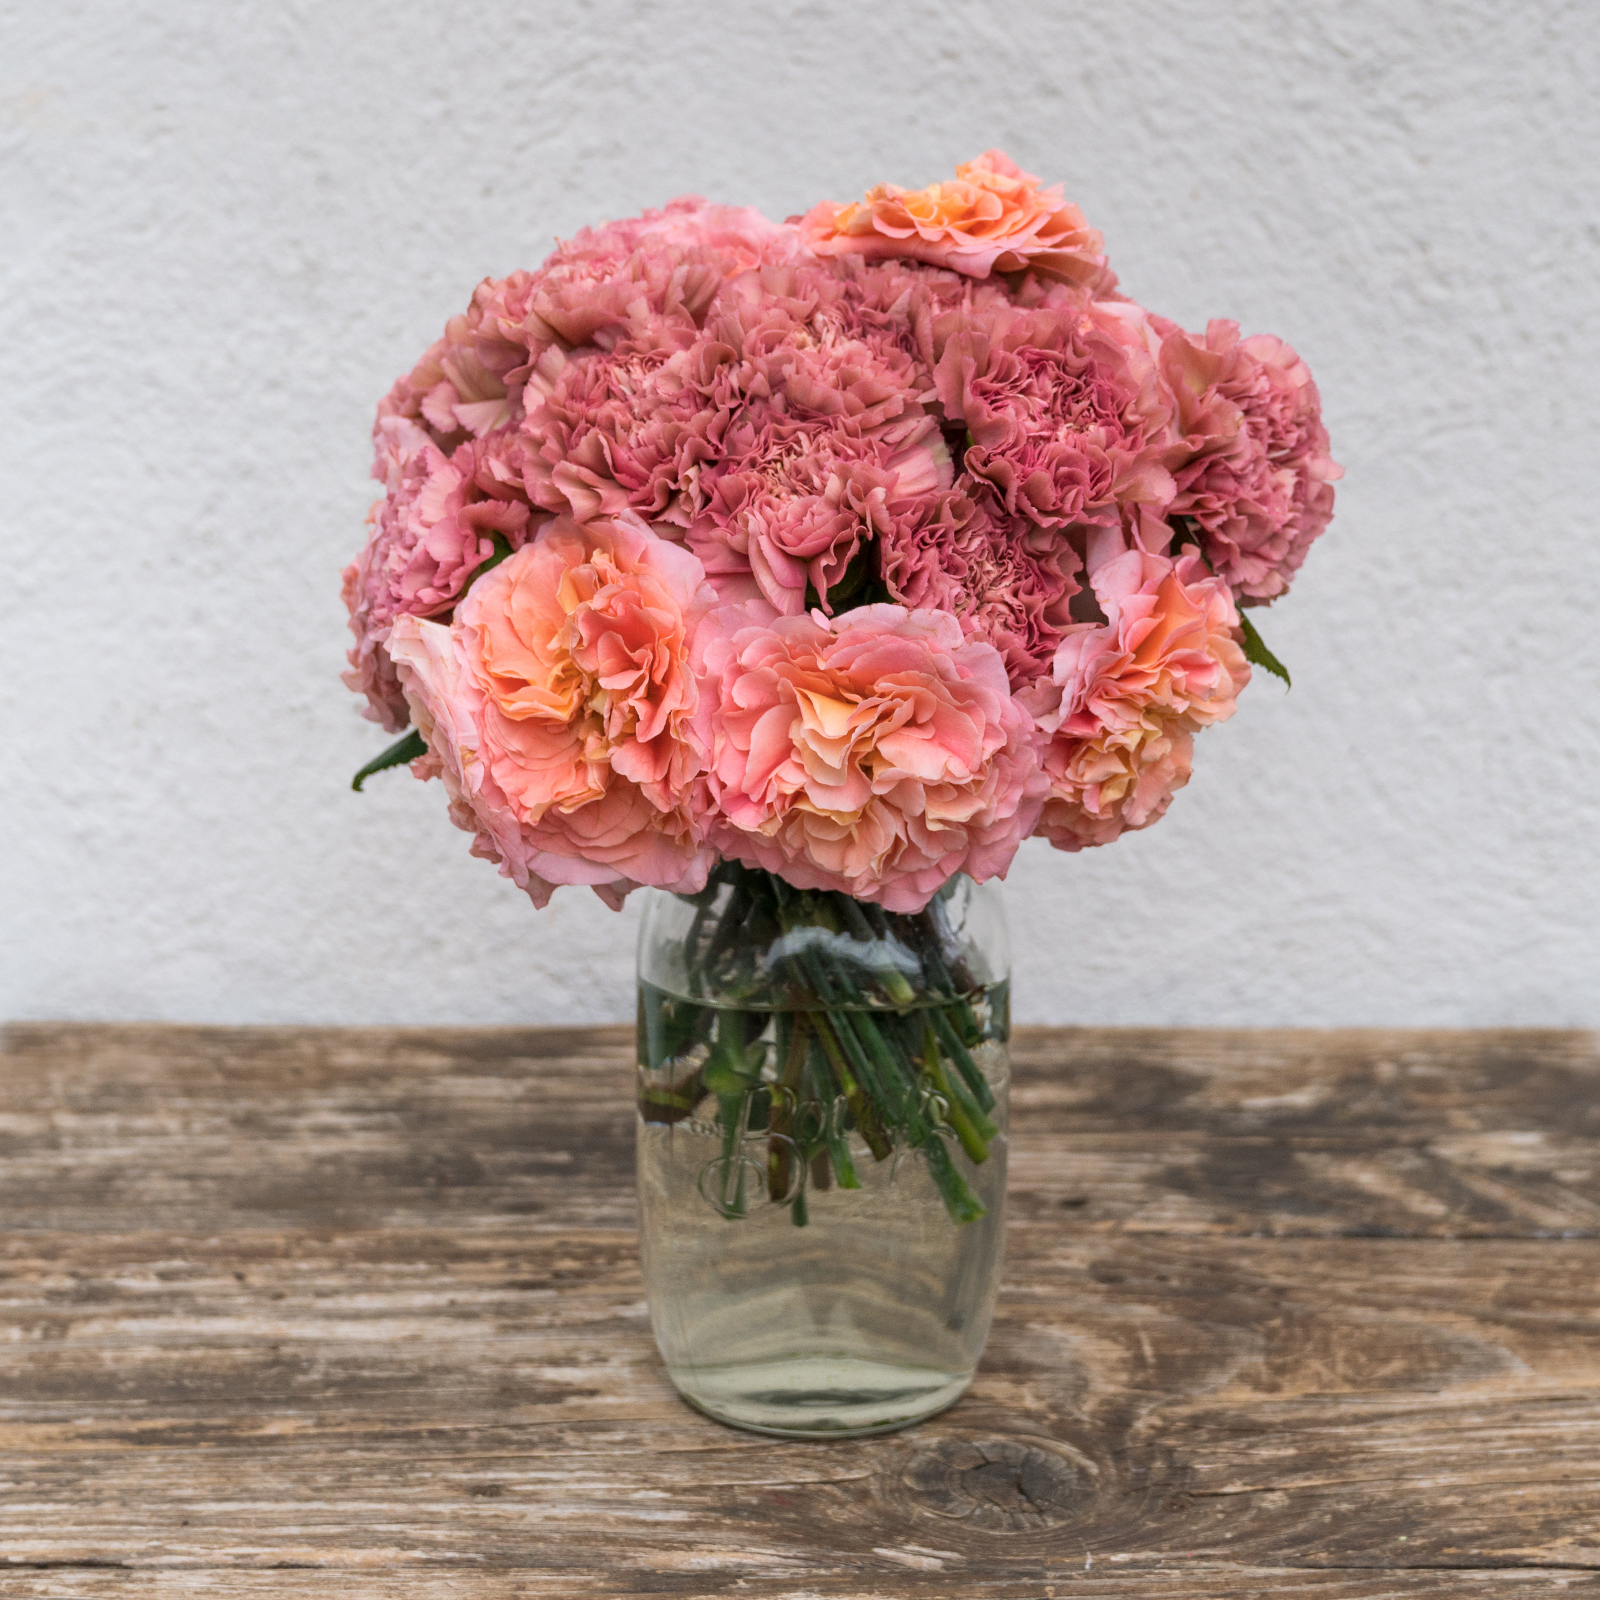 Best of Times Carnation Bouquet